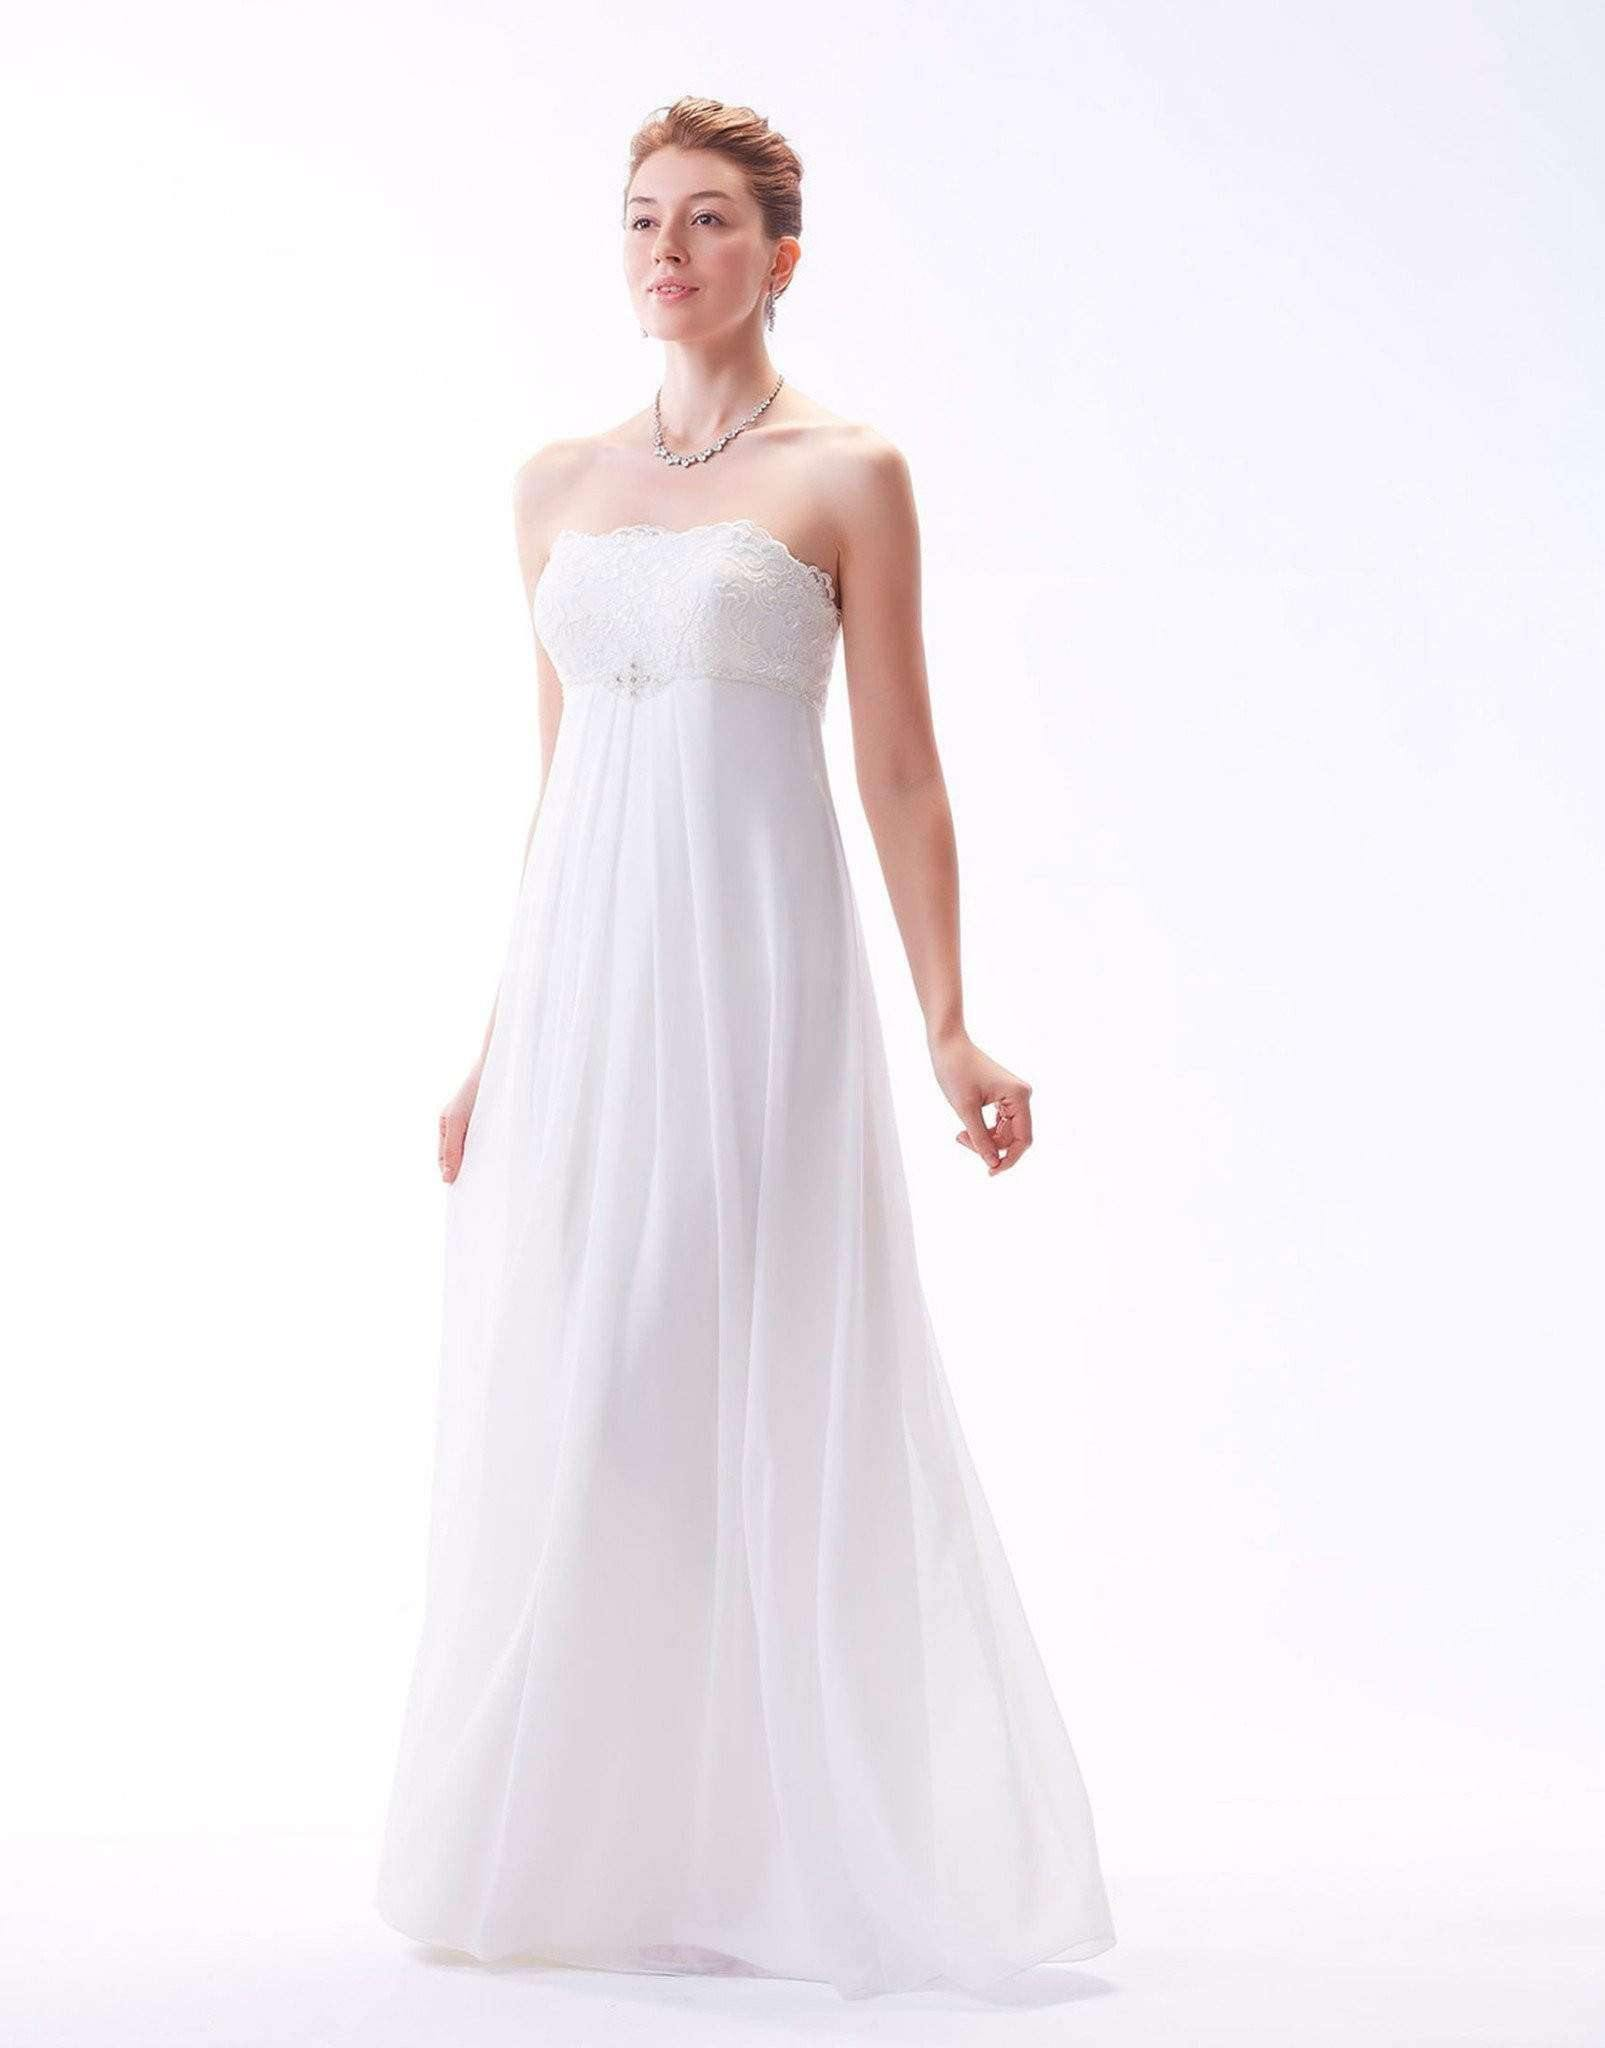 UK28 - VENUS - Jayne - sale - Adore Bridal and Occasion Wear